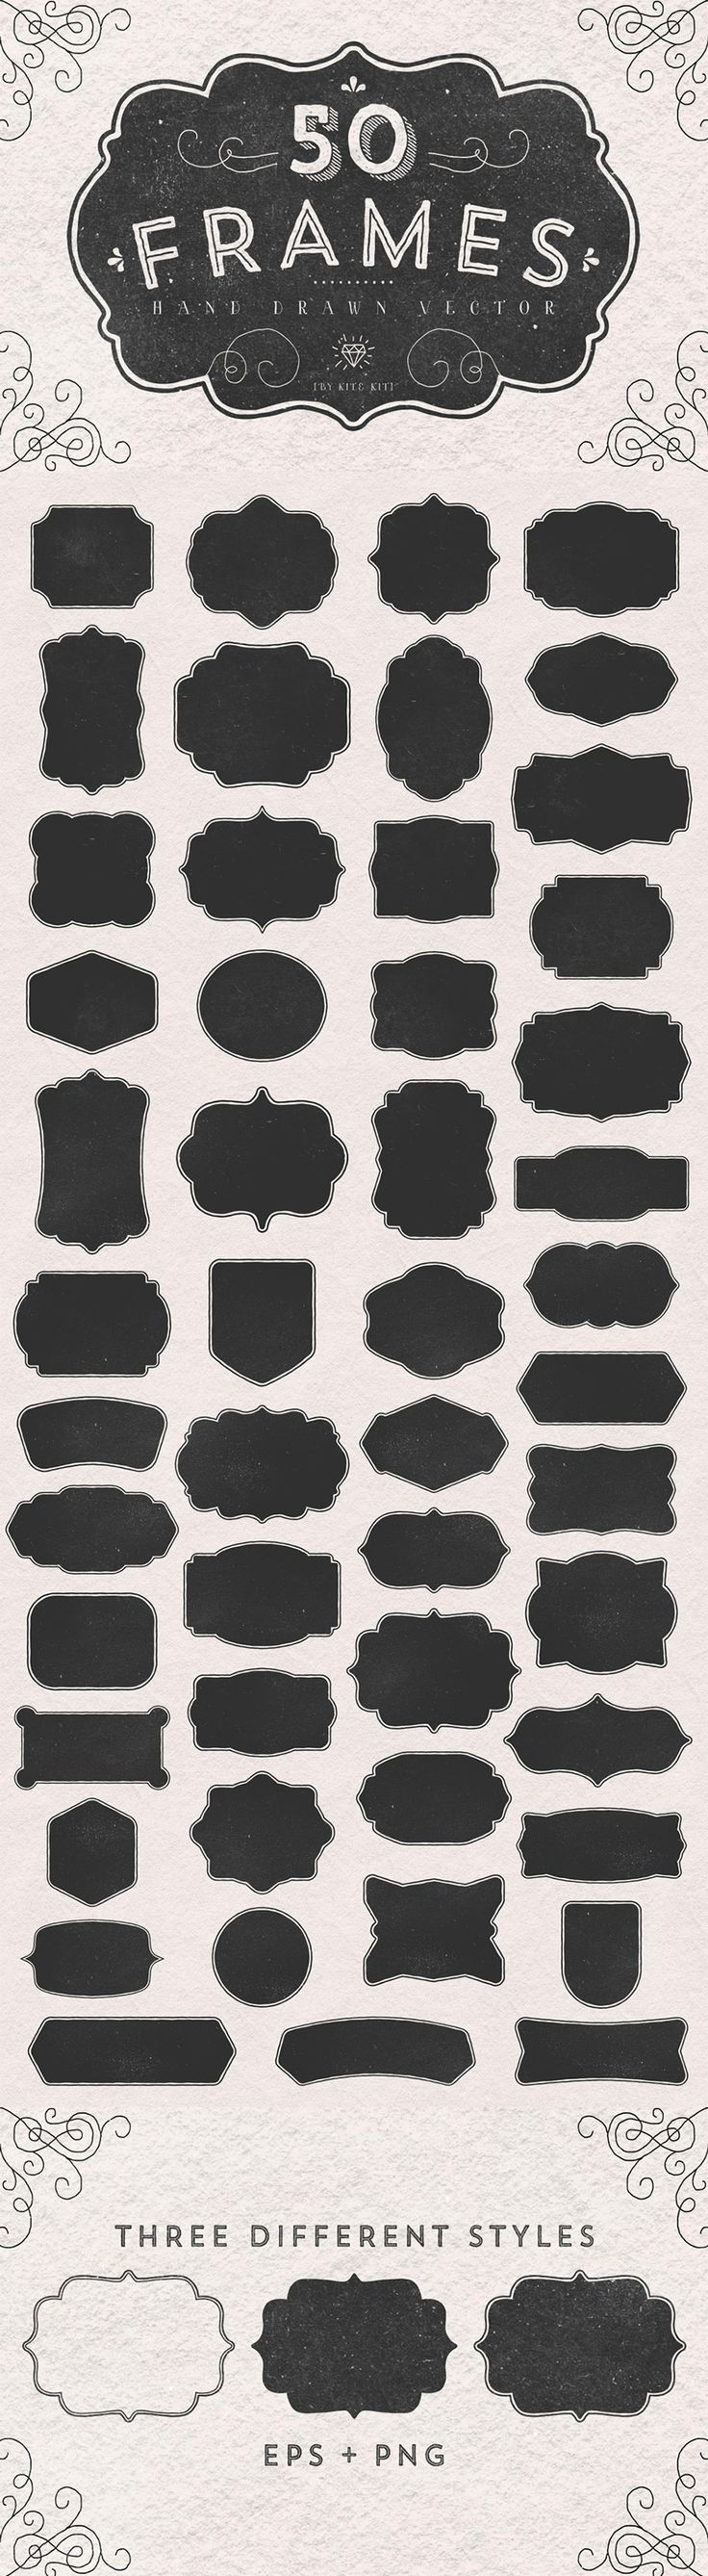 50 Frames Hand Drawn Vector by Kite Kit | The Comprehensive, Creative Vectors Bundle Mar 2015 from Design Cuts